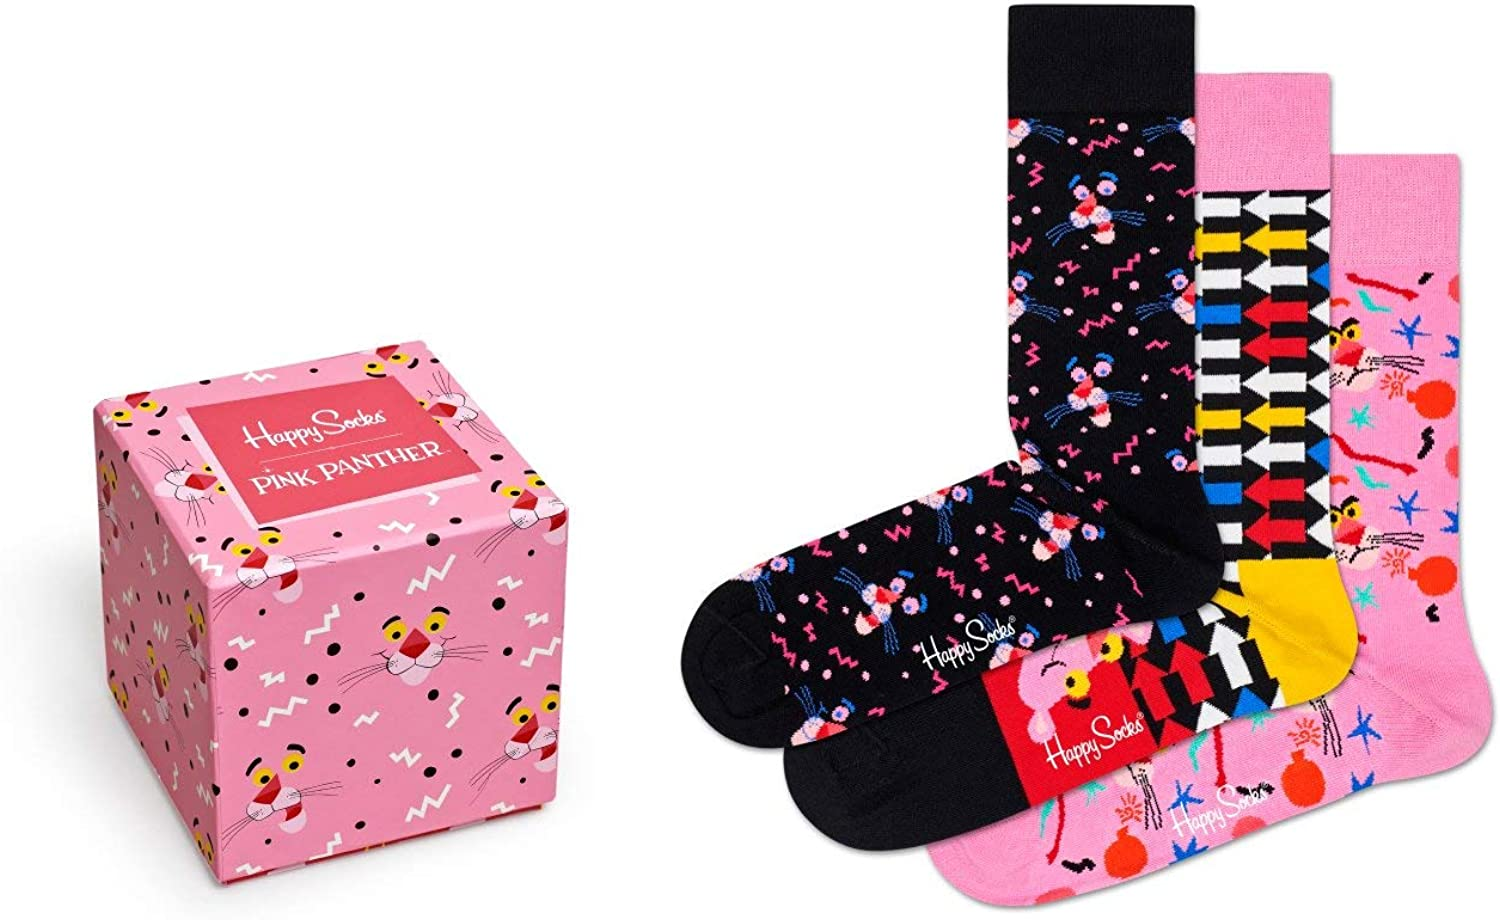 Happy Socks Mens and Ladies Pink Panther Cotton Gift Boxed Socks Pack of 3